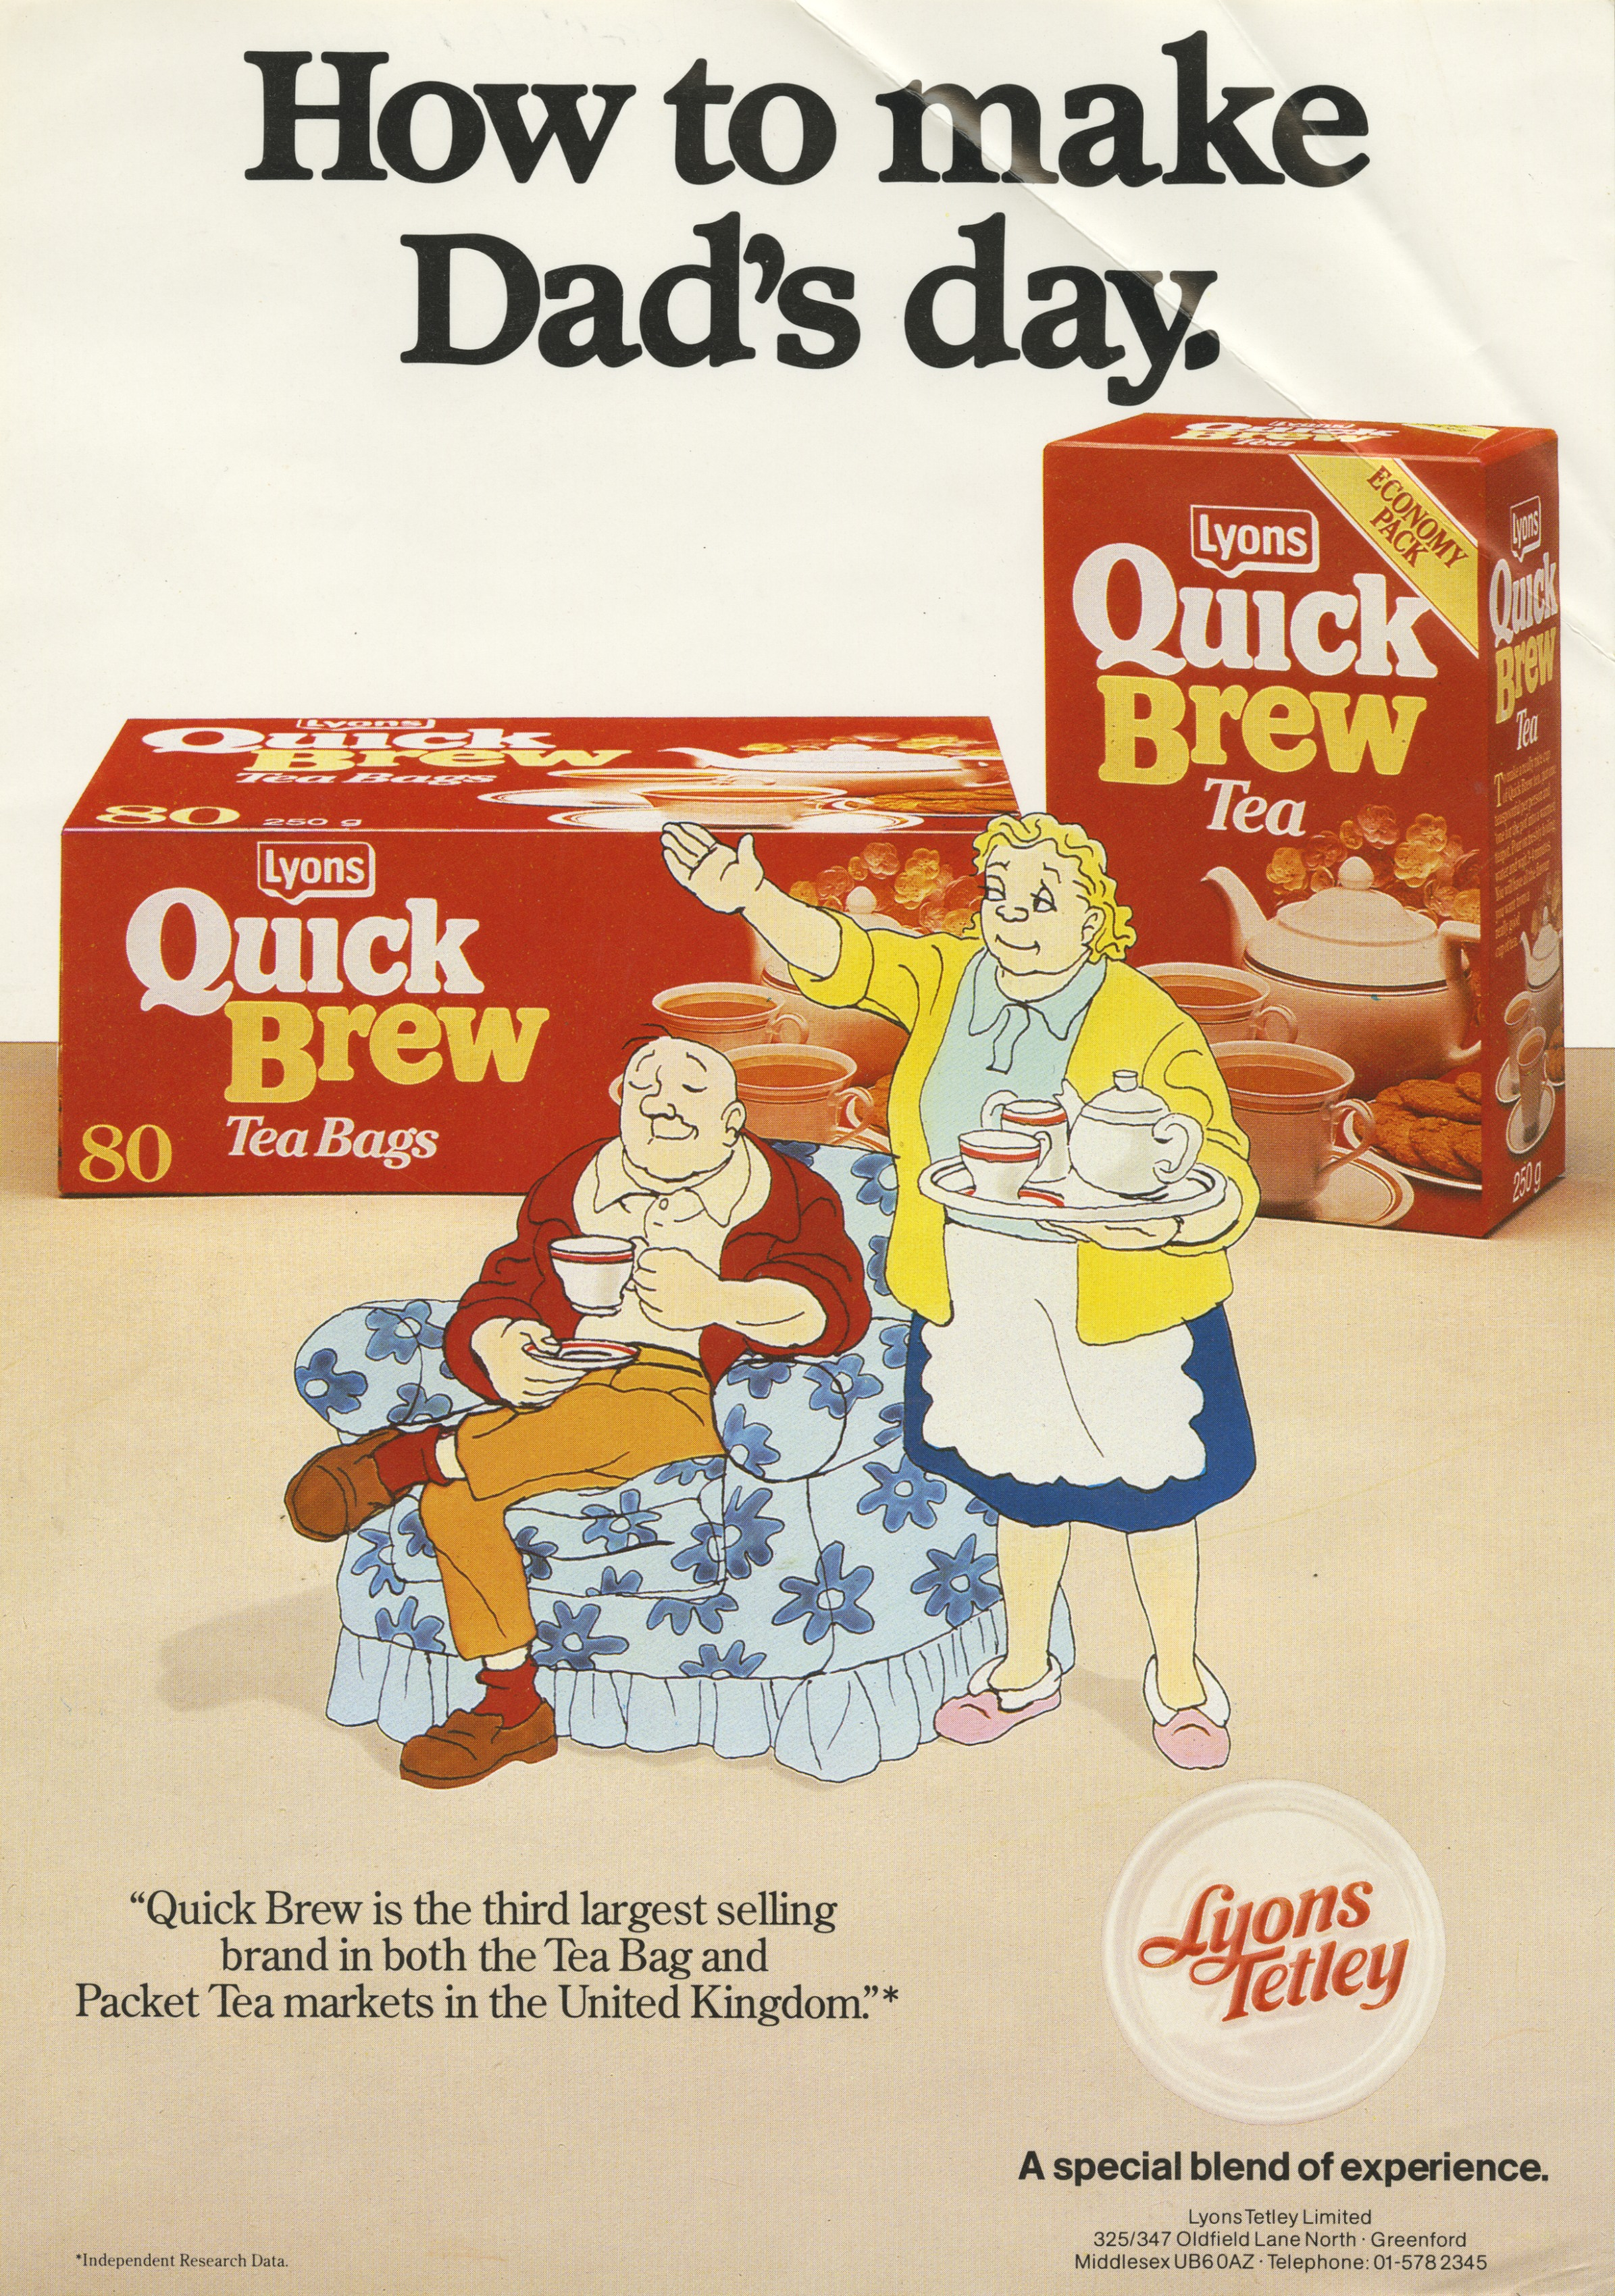 Colour advert for Lyons Quick Brew tea bags with Giles cartoon - Carl Giles, c.1985 (Image ref: GAPC0611)